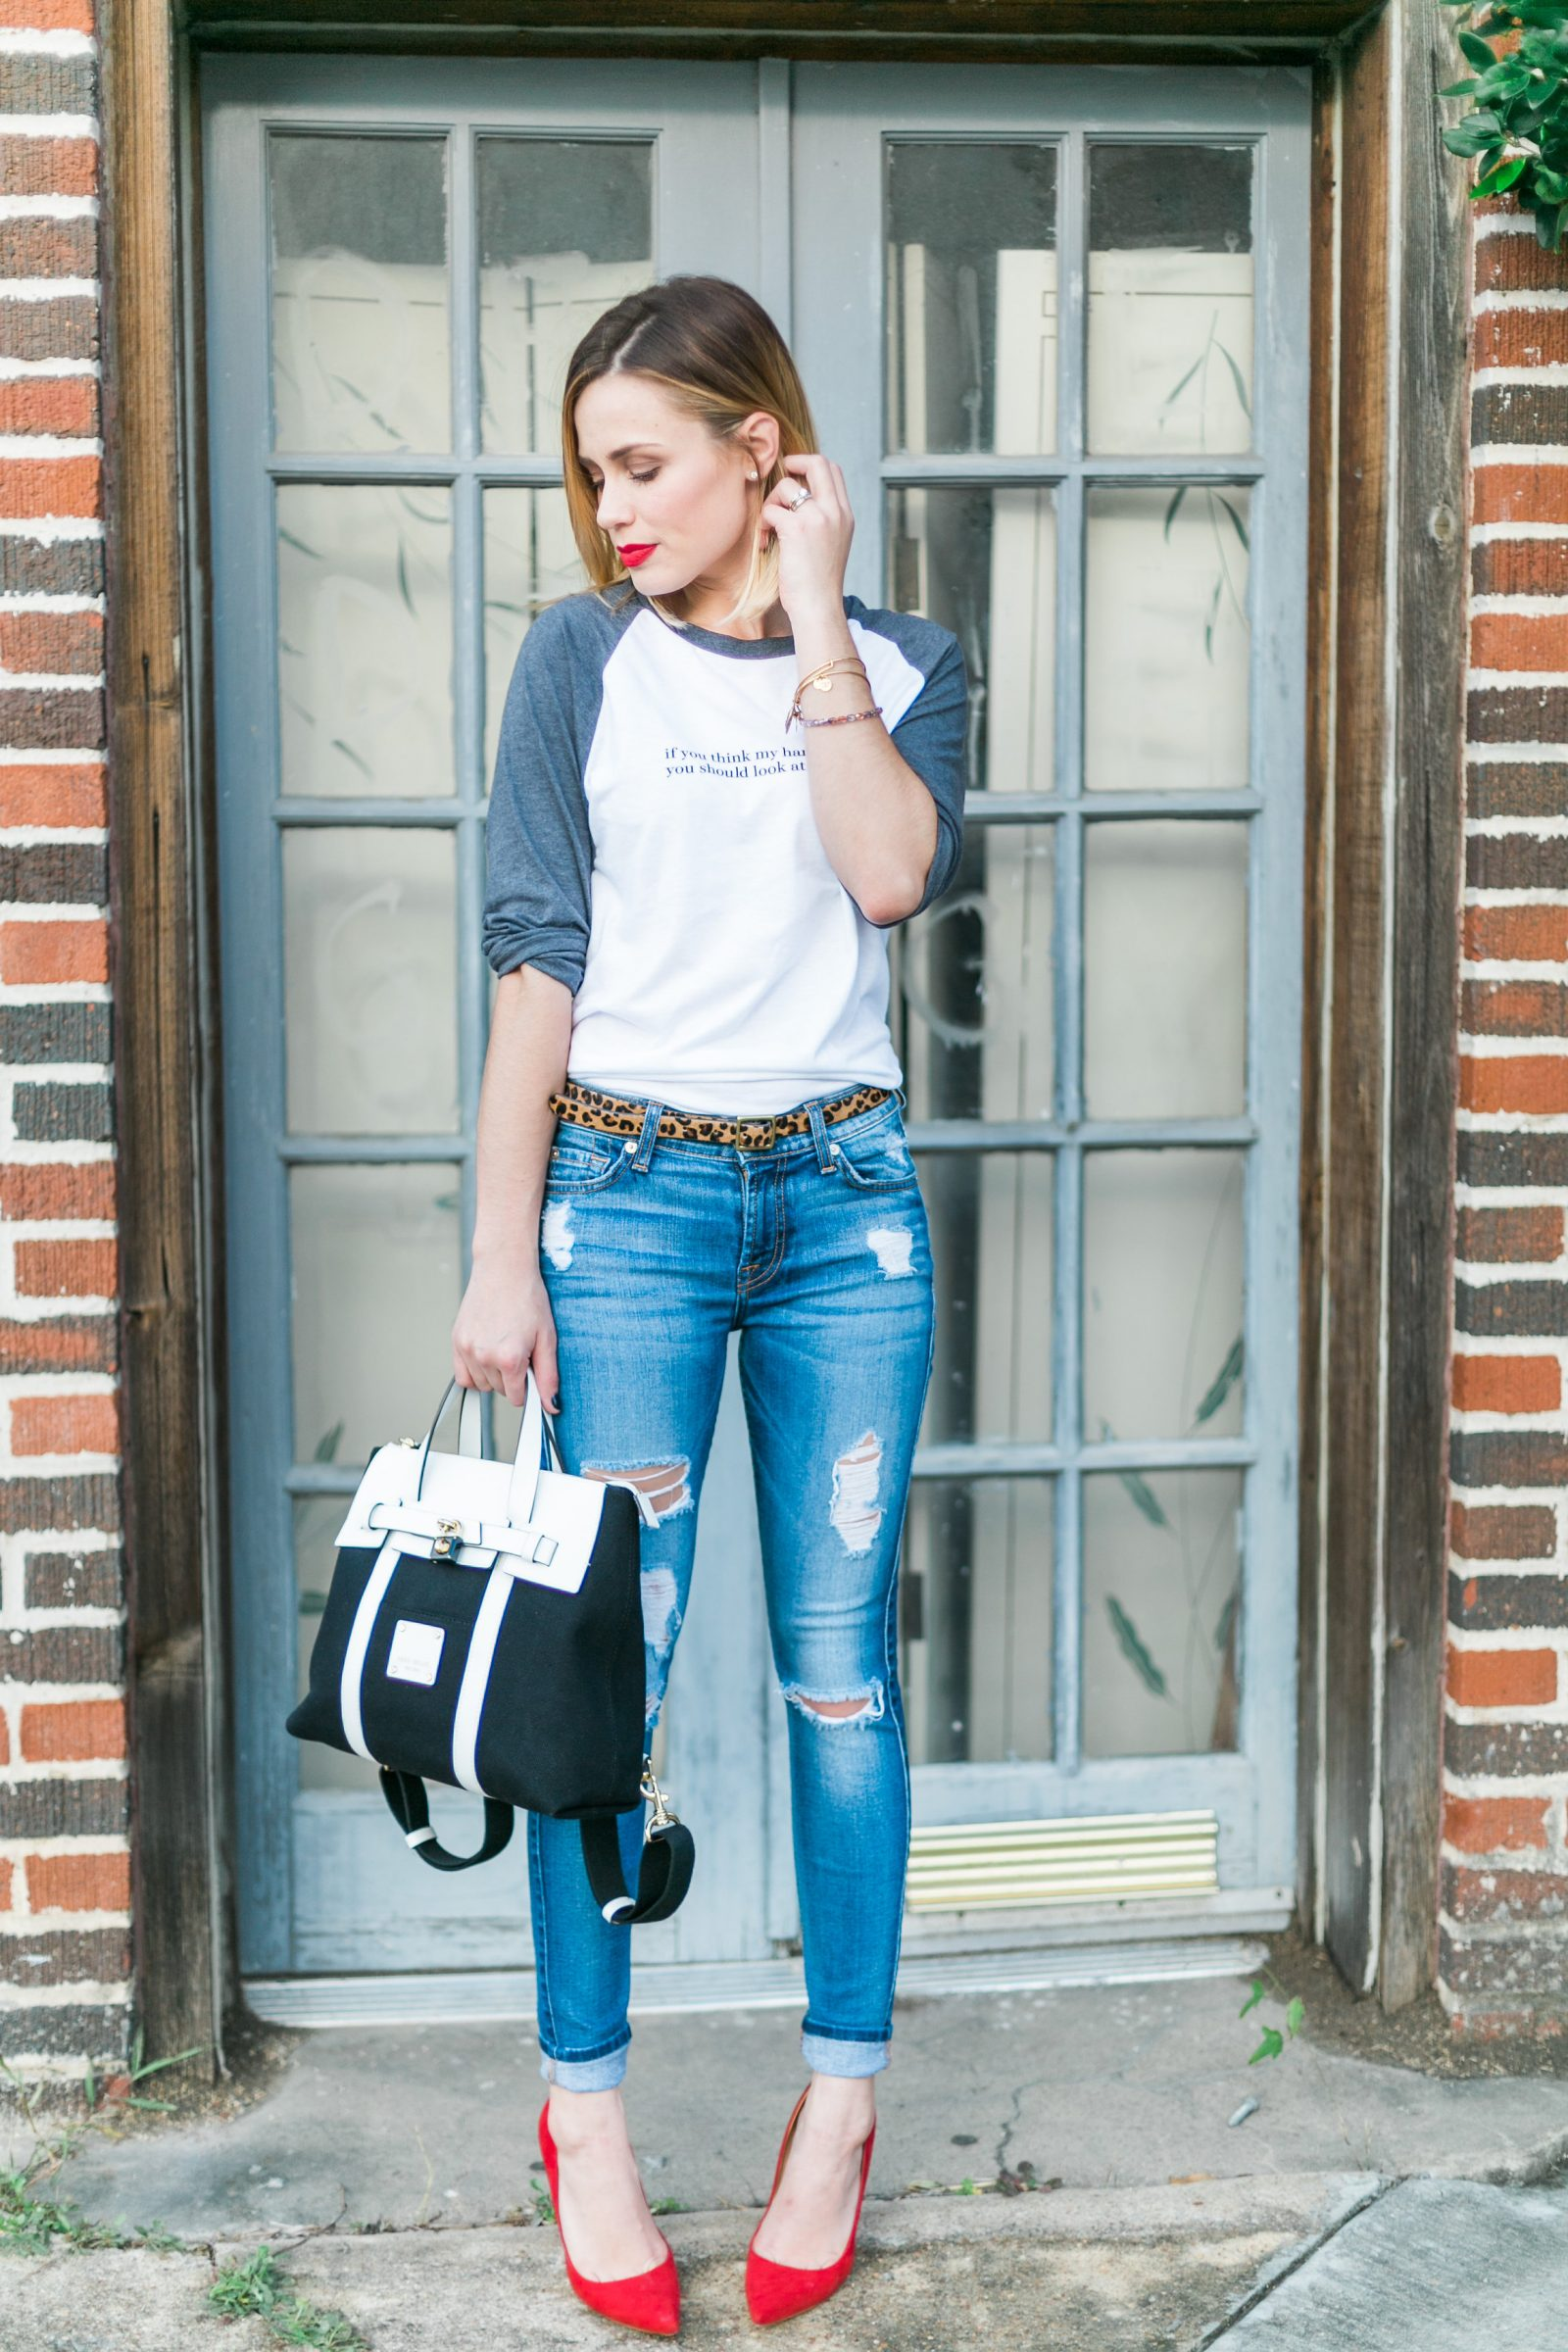 Houston fashion blogger wears a graphic tshirt and jeans outfit paired with red heels